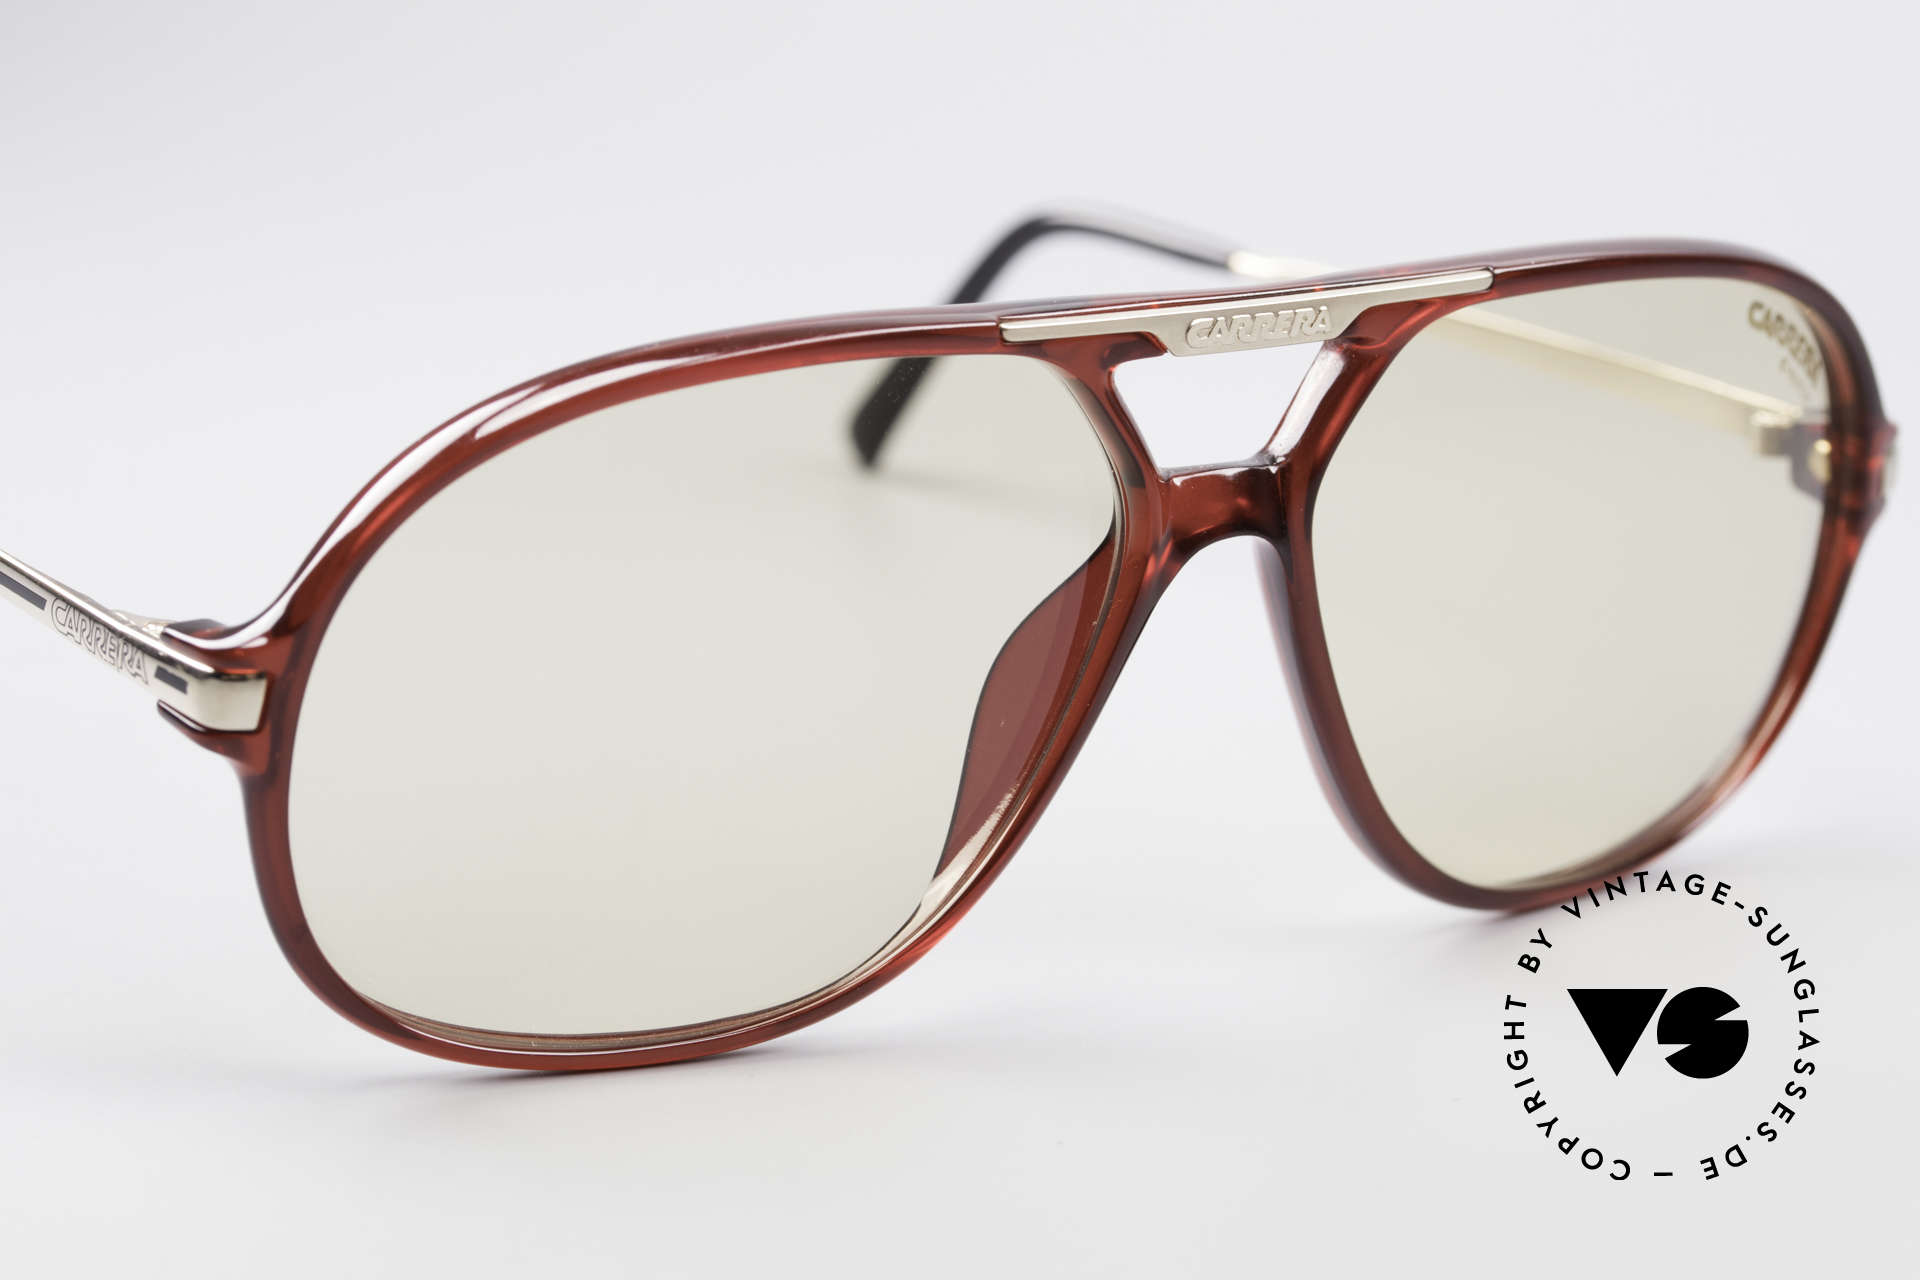 Carrera 5411 C-Matic Extra Changeable Sun Lenses, unworn rarity - single and true VINTAGE commodity, Made for Men